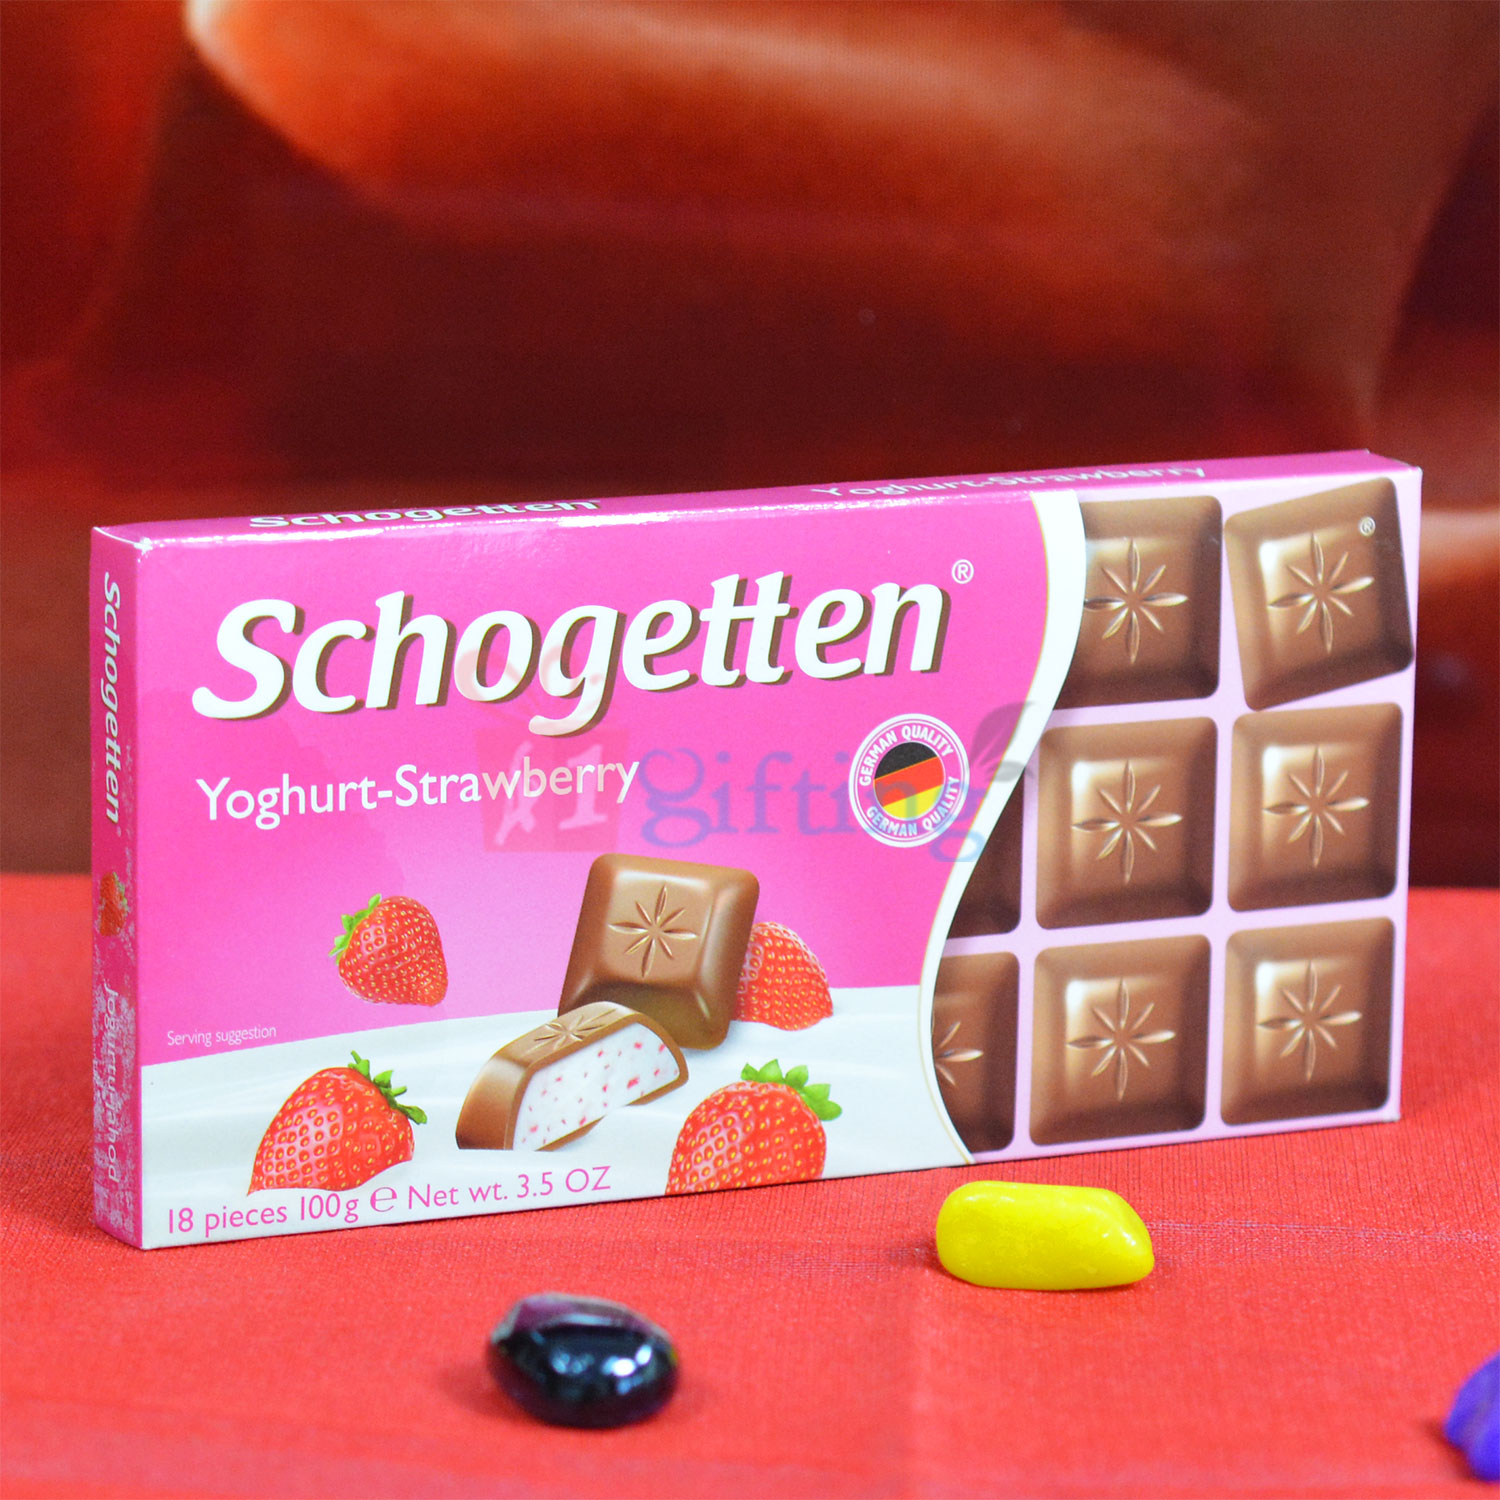 Schogetten Yoghurt Strawberry